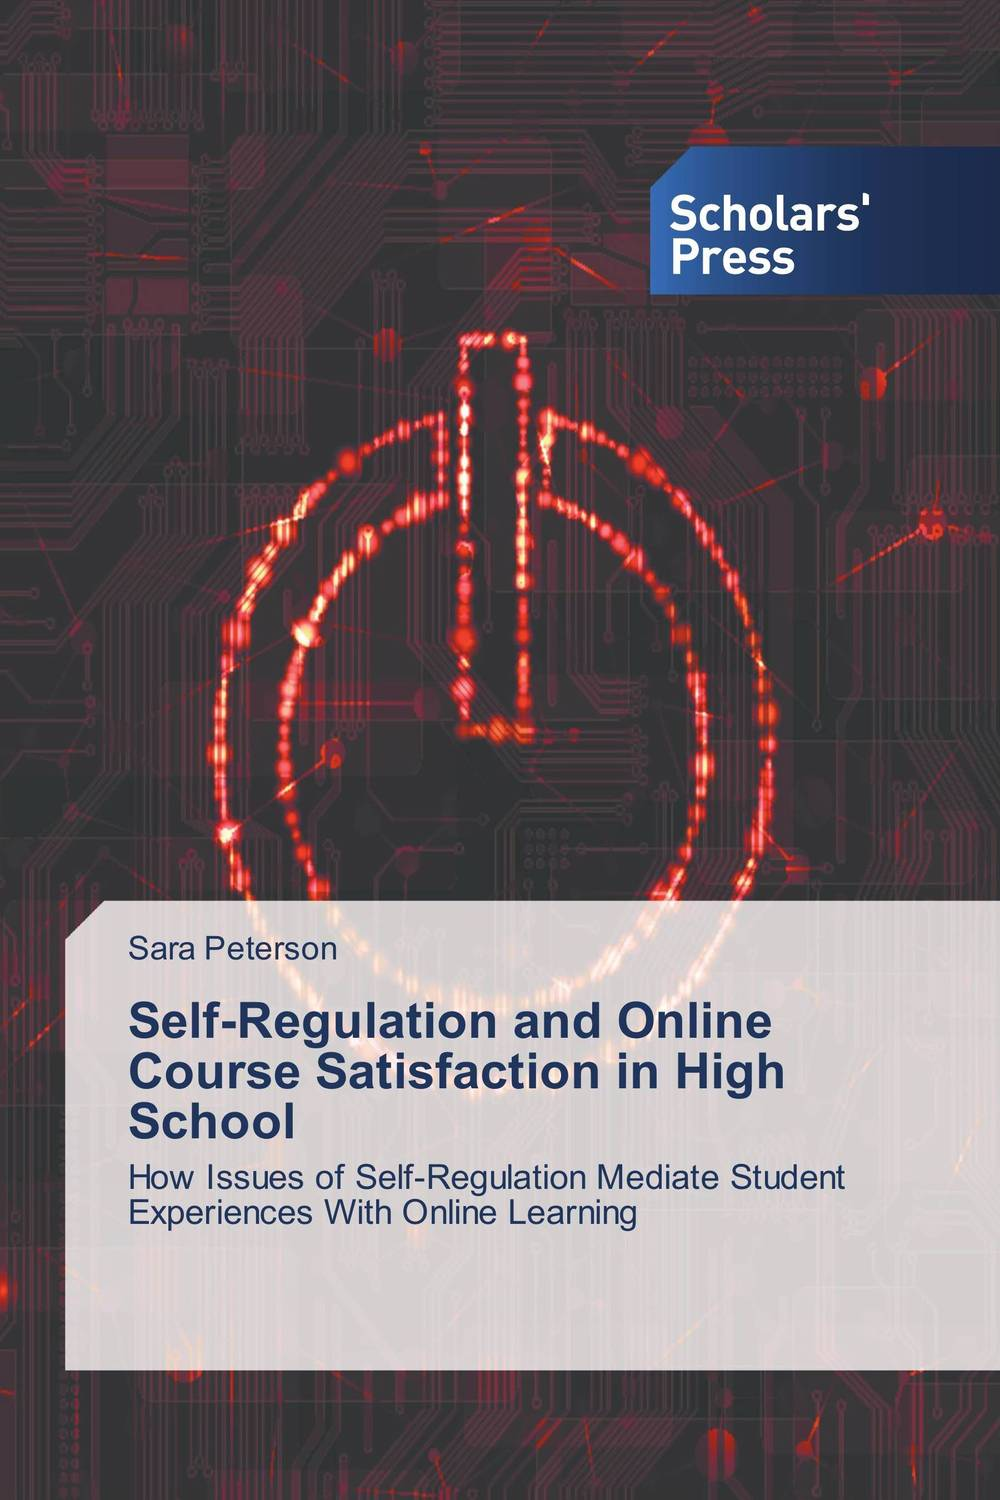 Self-Regulation and Online Course Satisfaction in High School warren greshes the best damn management book ever 9 keys to creating self motivated high achievers